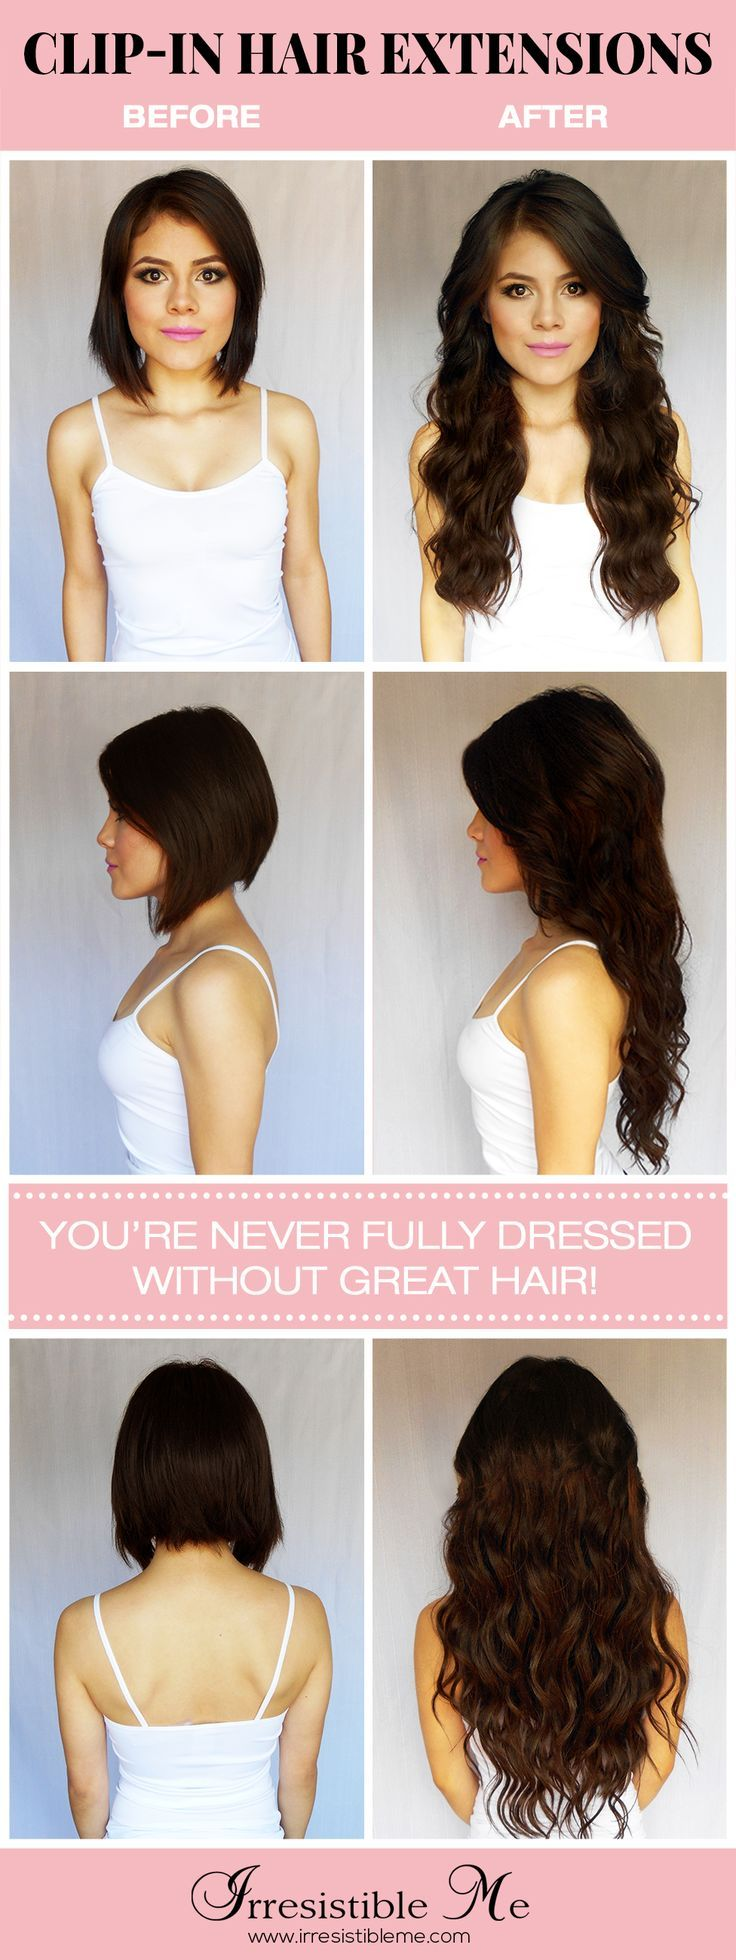 Make A Dramatic Hairstyle Change With Irresistible Me Human Remy Clip In Hair Extensions You Can Add Length And Volume Matter Of Minutes